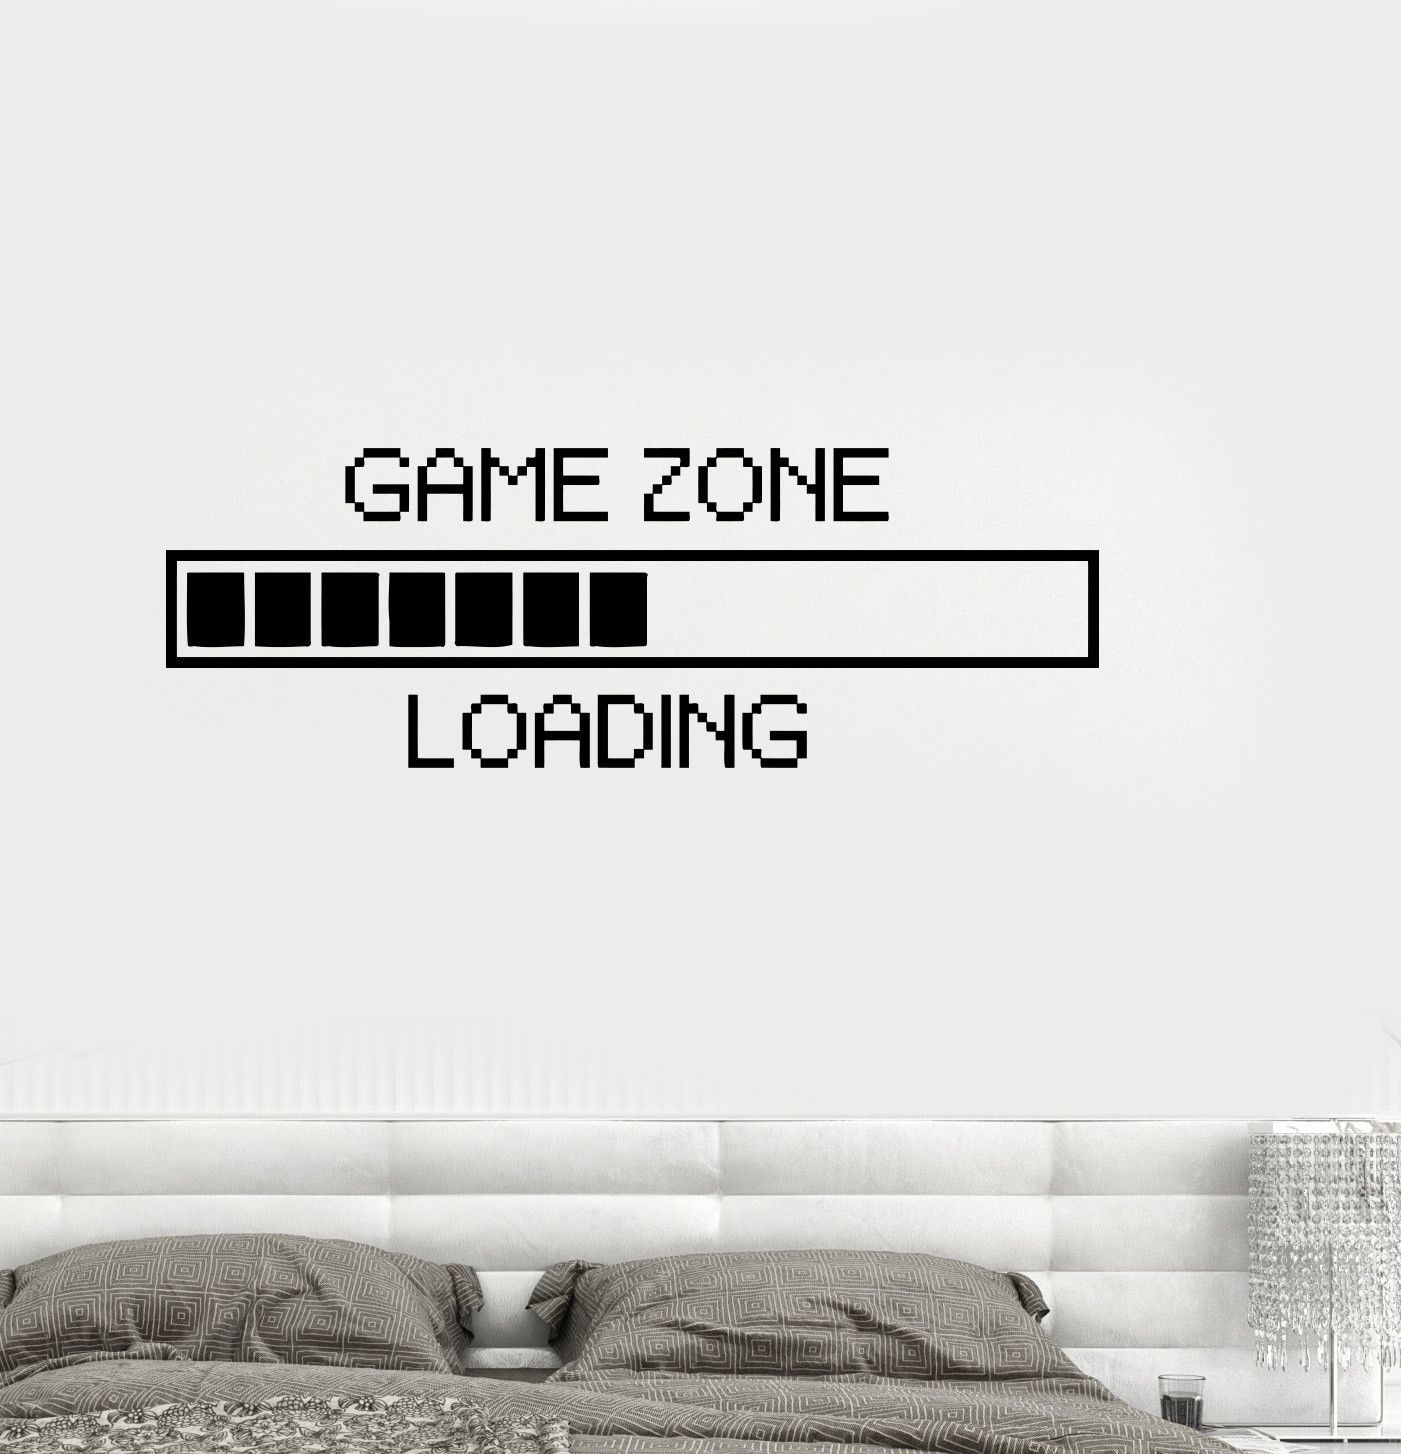 vinyl decal game zone computer gaming decor loading video game vinyl decal game zone computer gaming decor loading video game wall stickers ig2747